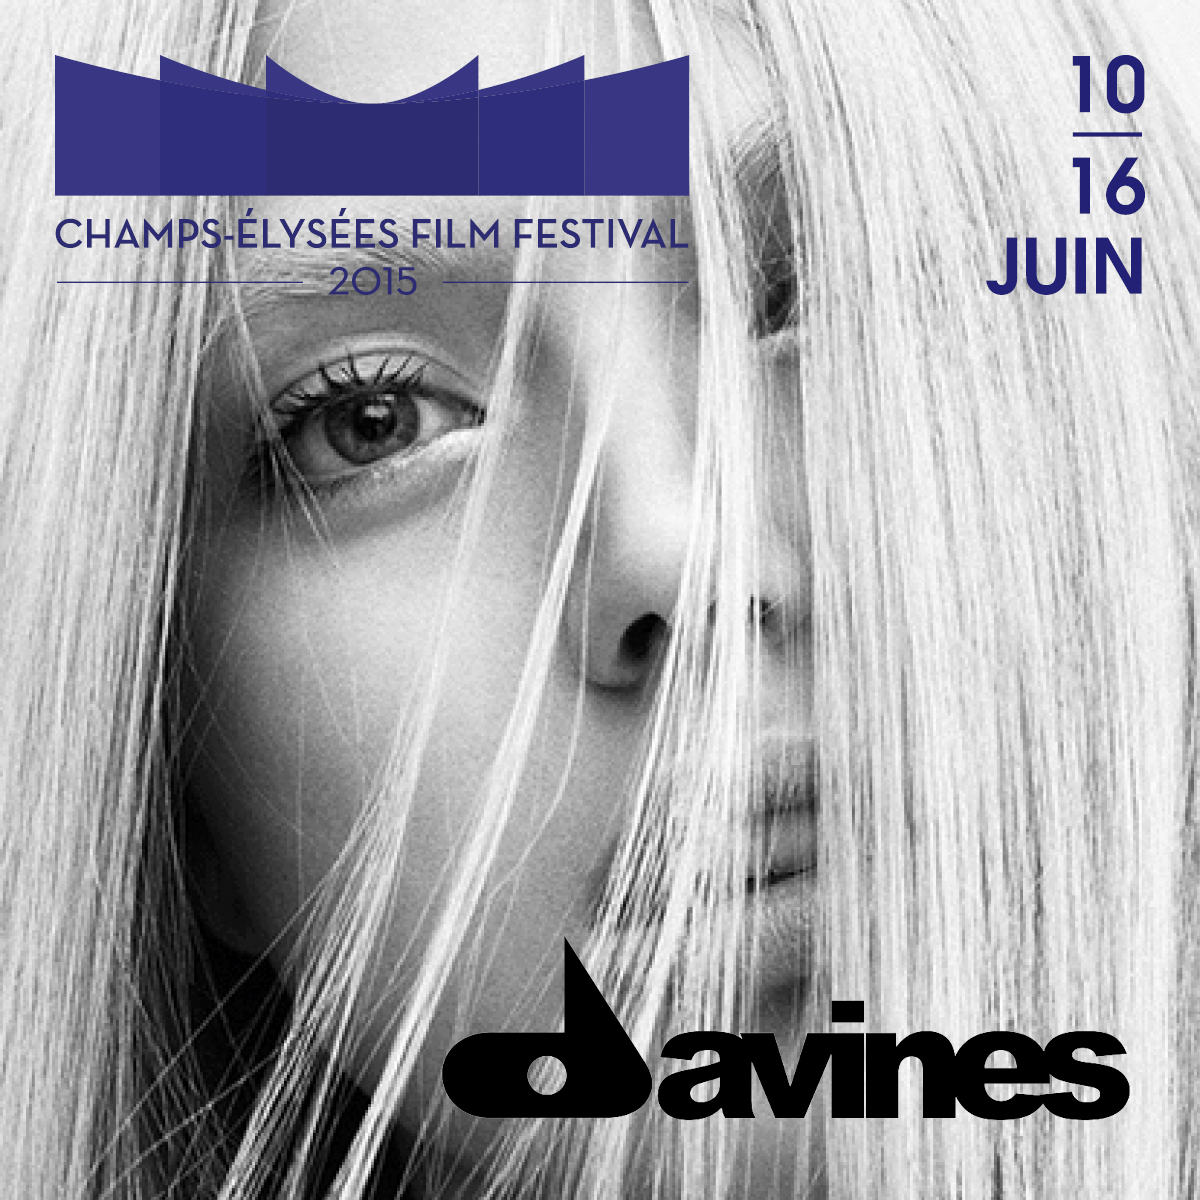 Champs-Élysées Film Festival is glad to welcome @DavinesFrance amongst its partners. http://t.co/sQ4crhKPki